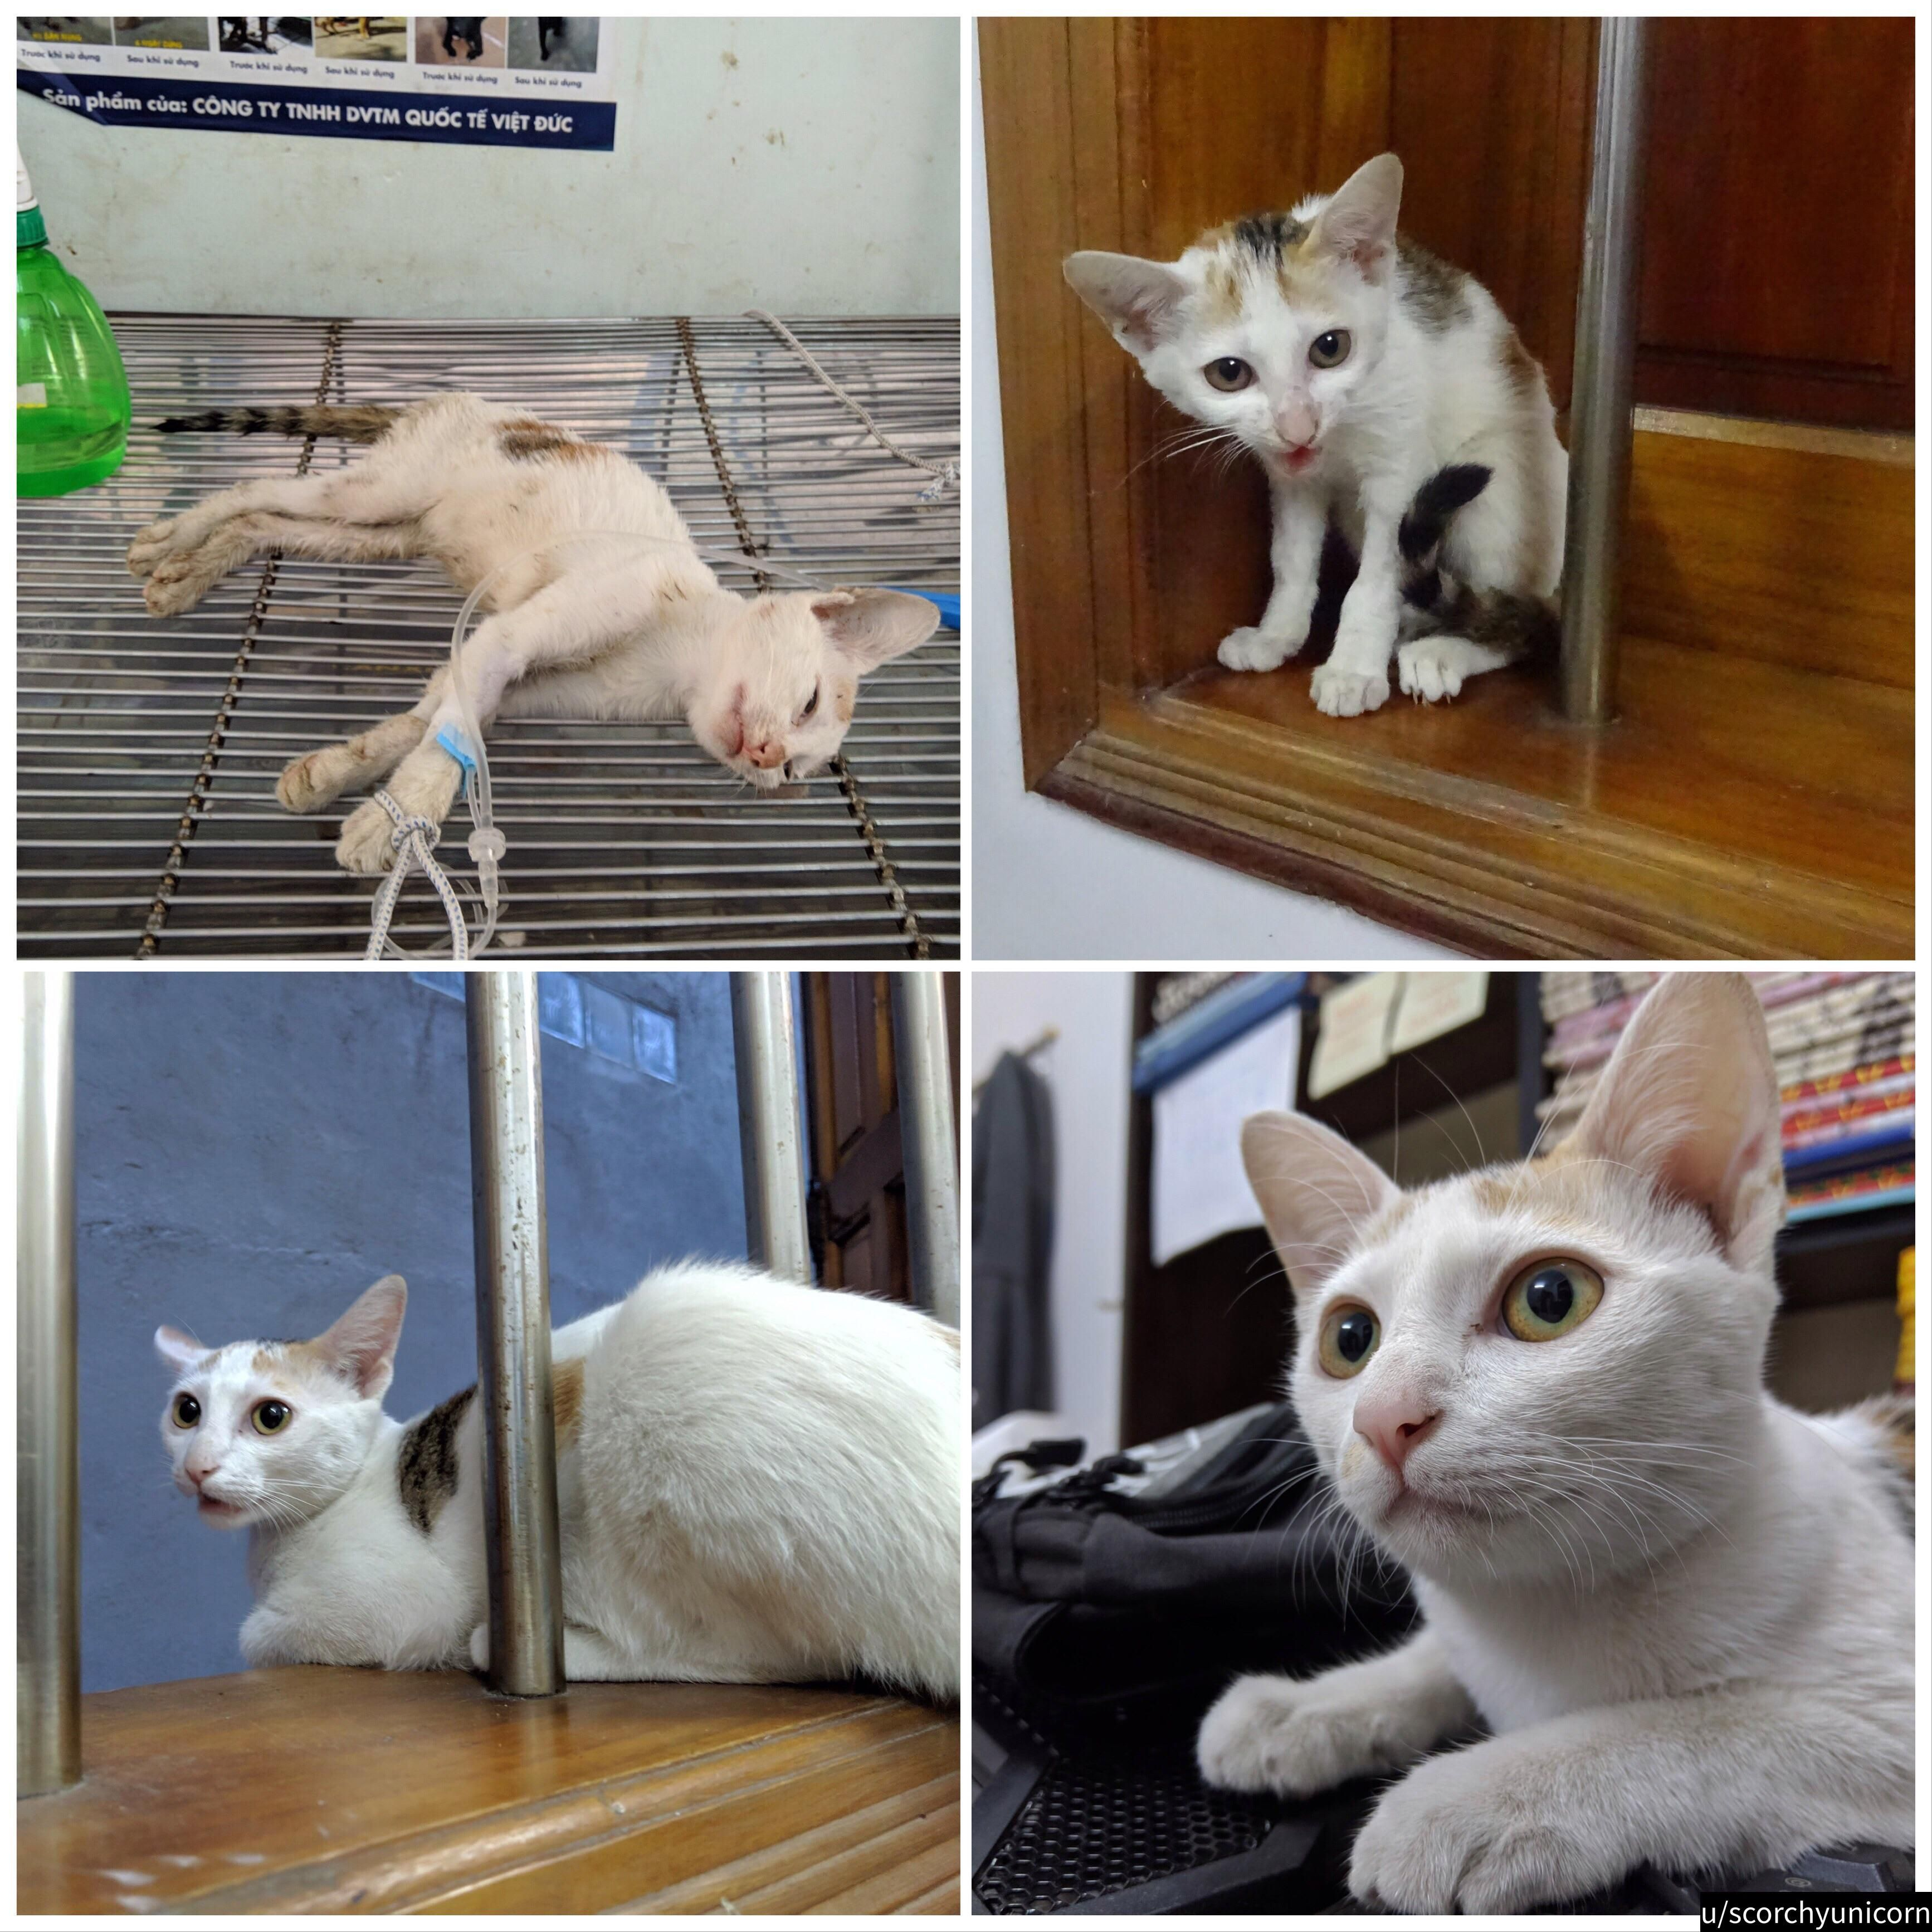 I adopted a stray cat 3 months ago. She was very weak and